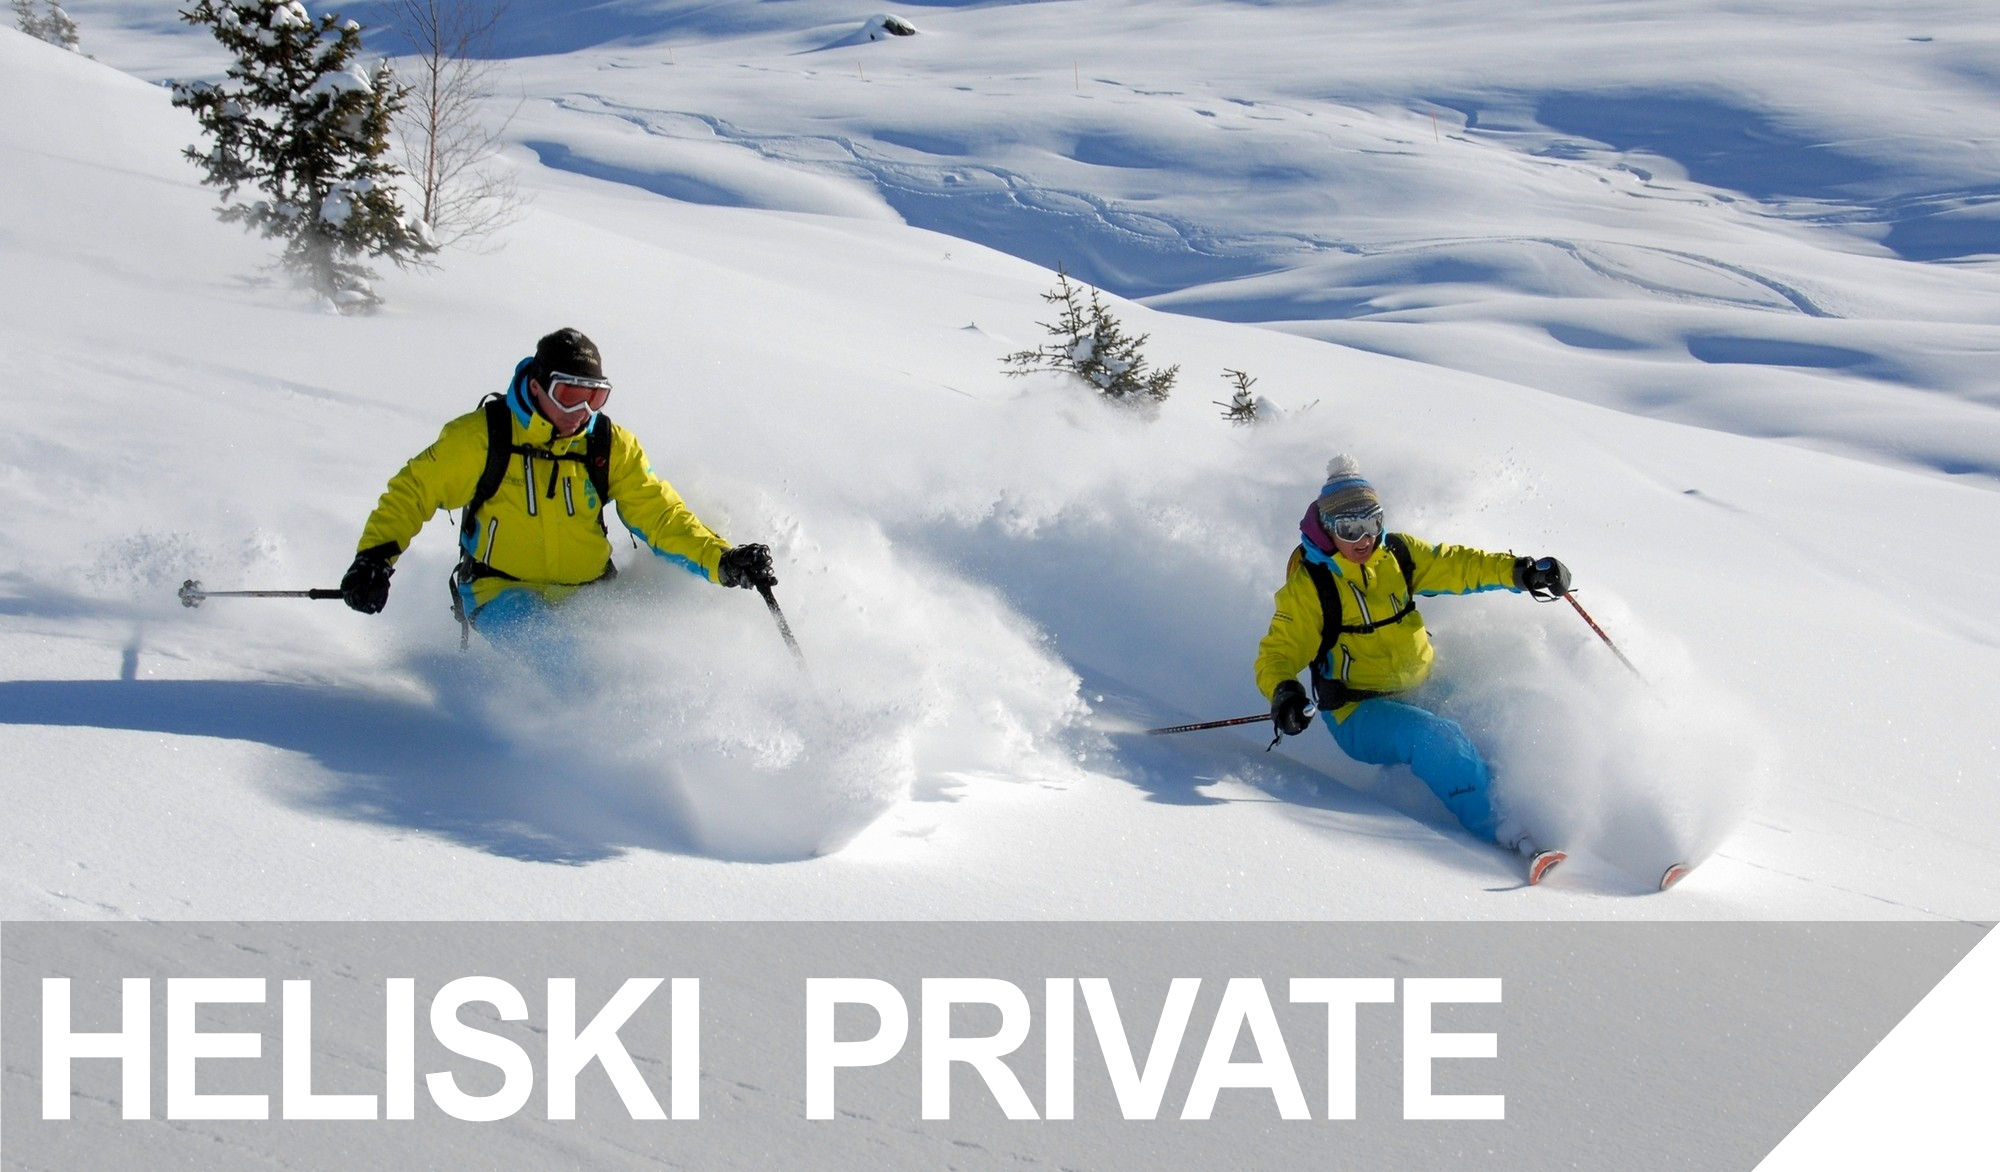 HELISKI PRIVATE